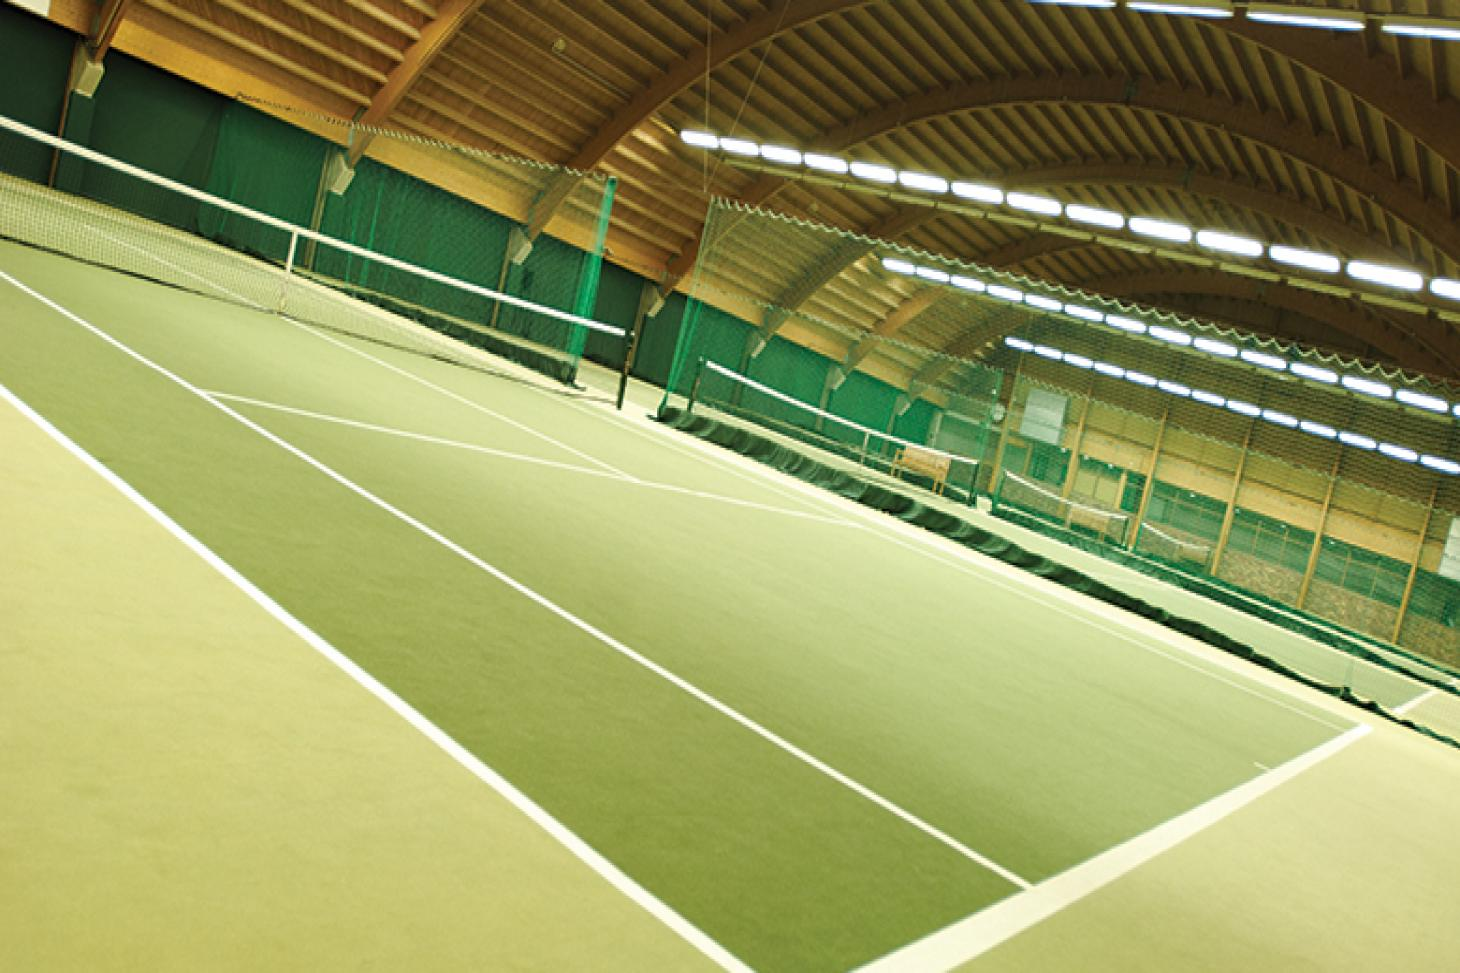 David Lloyd Heston Indoor tennis court